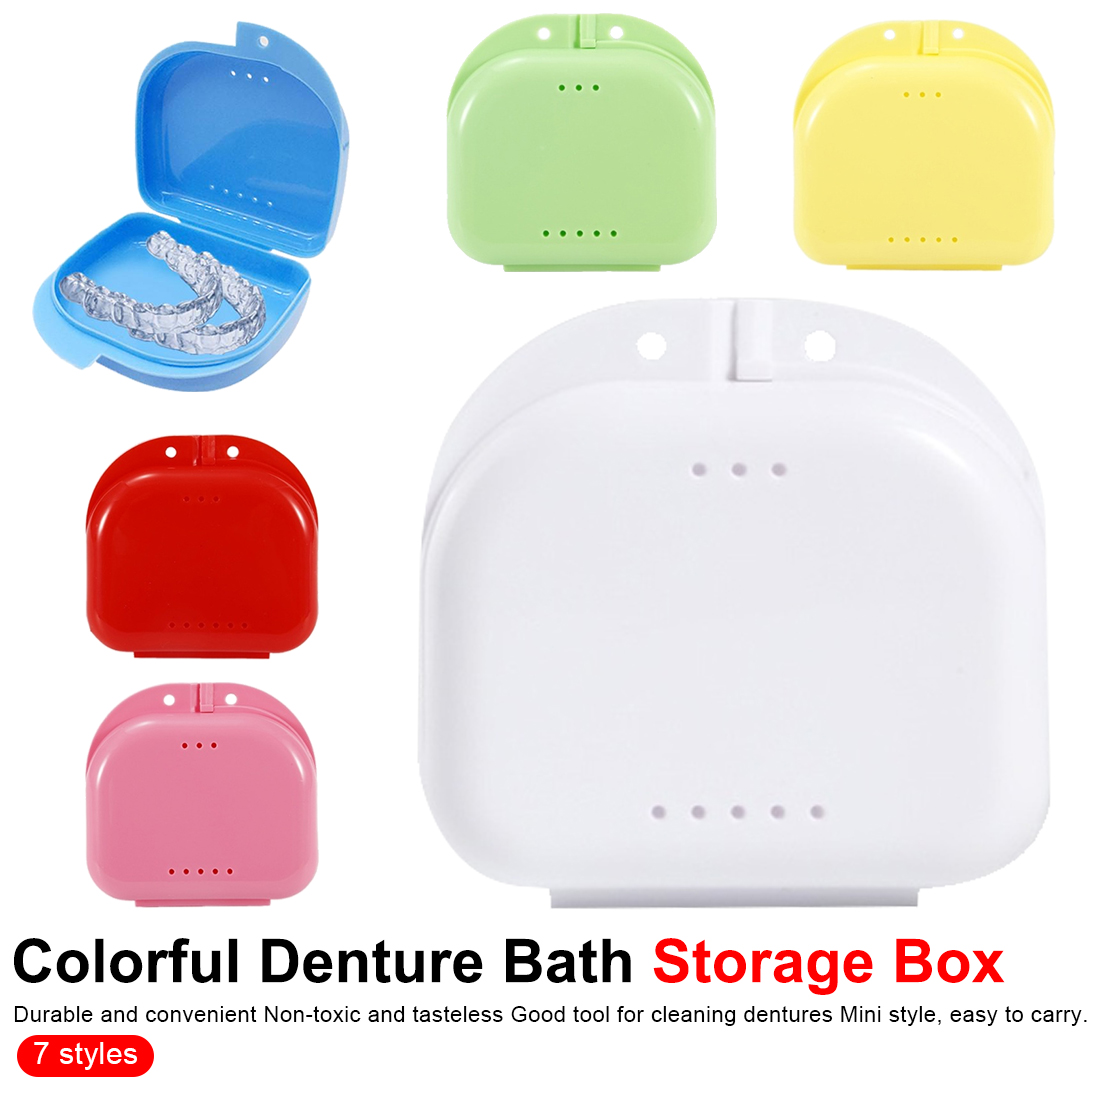 Dentures Cleaner Tool 1pcs 7 Colors Denture Bath Storage Box Case Dental False Teeth Appliance Container Storage Boxes